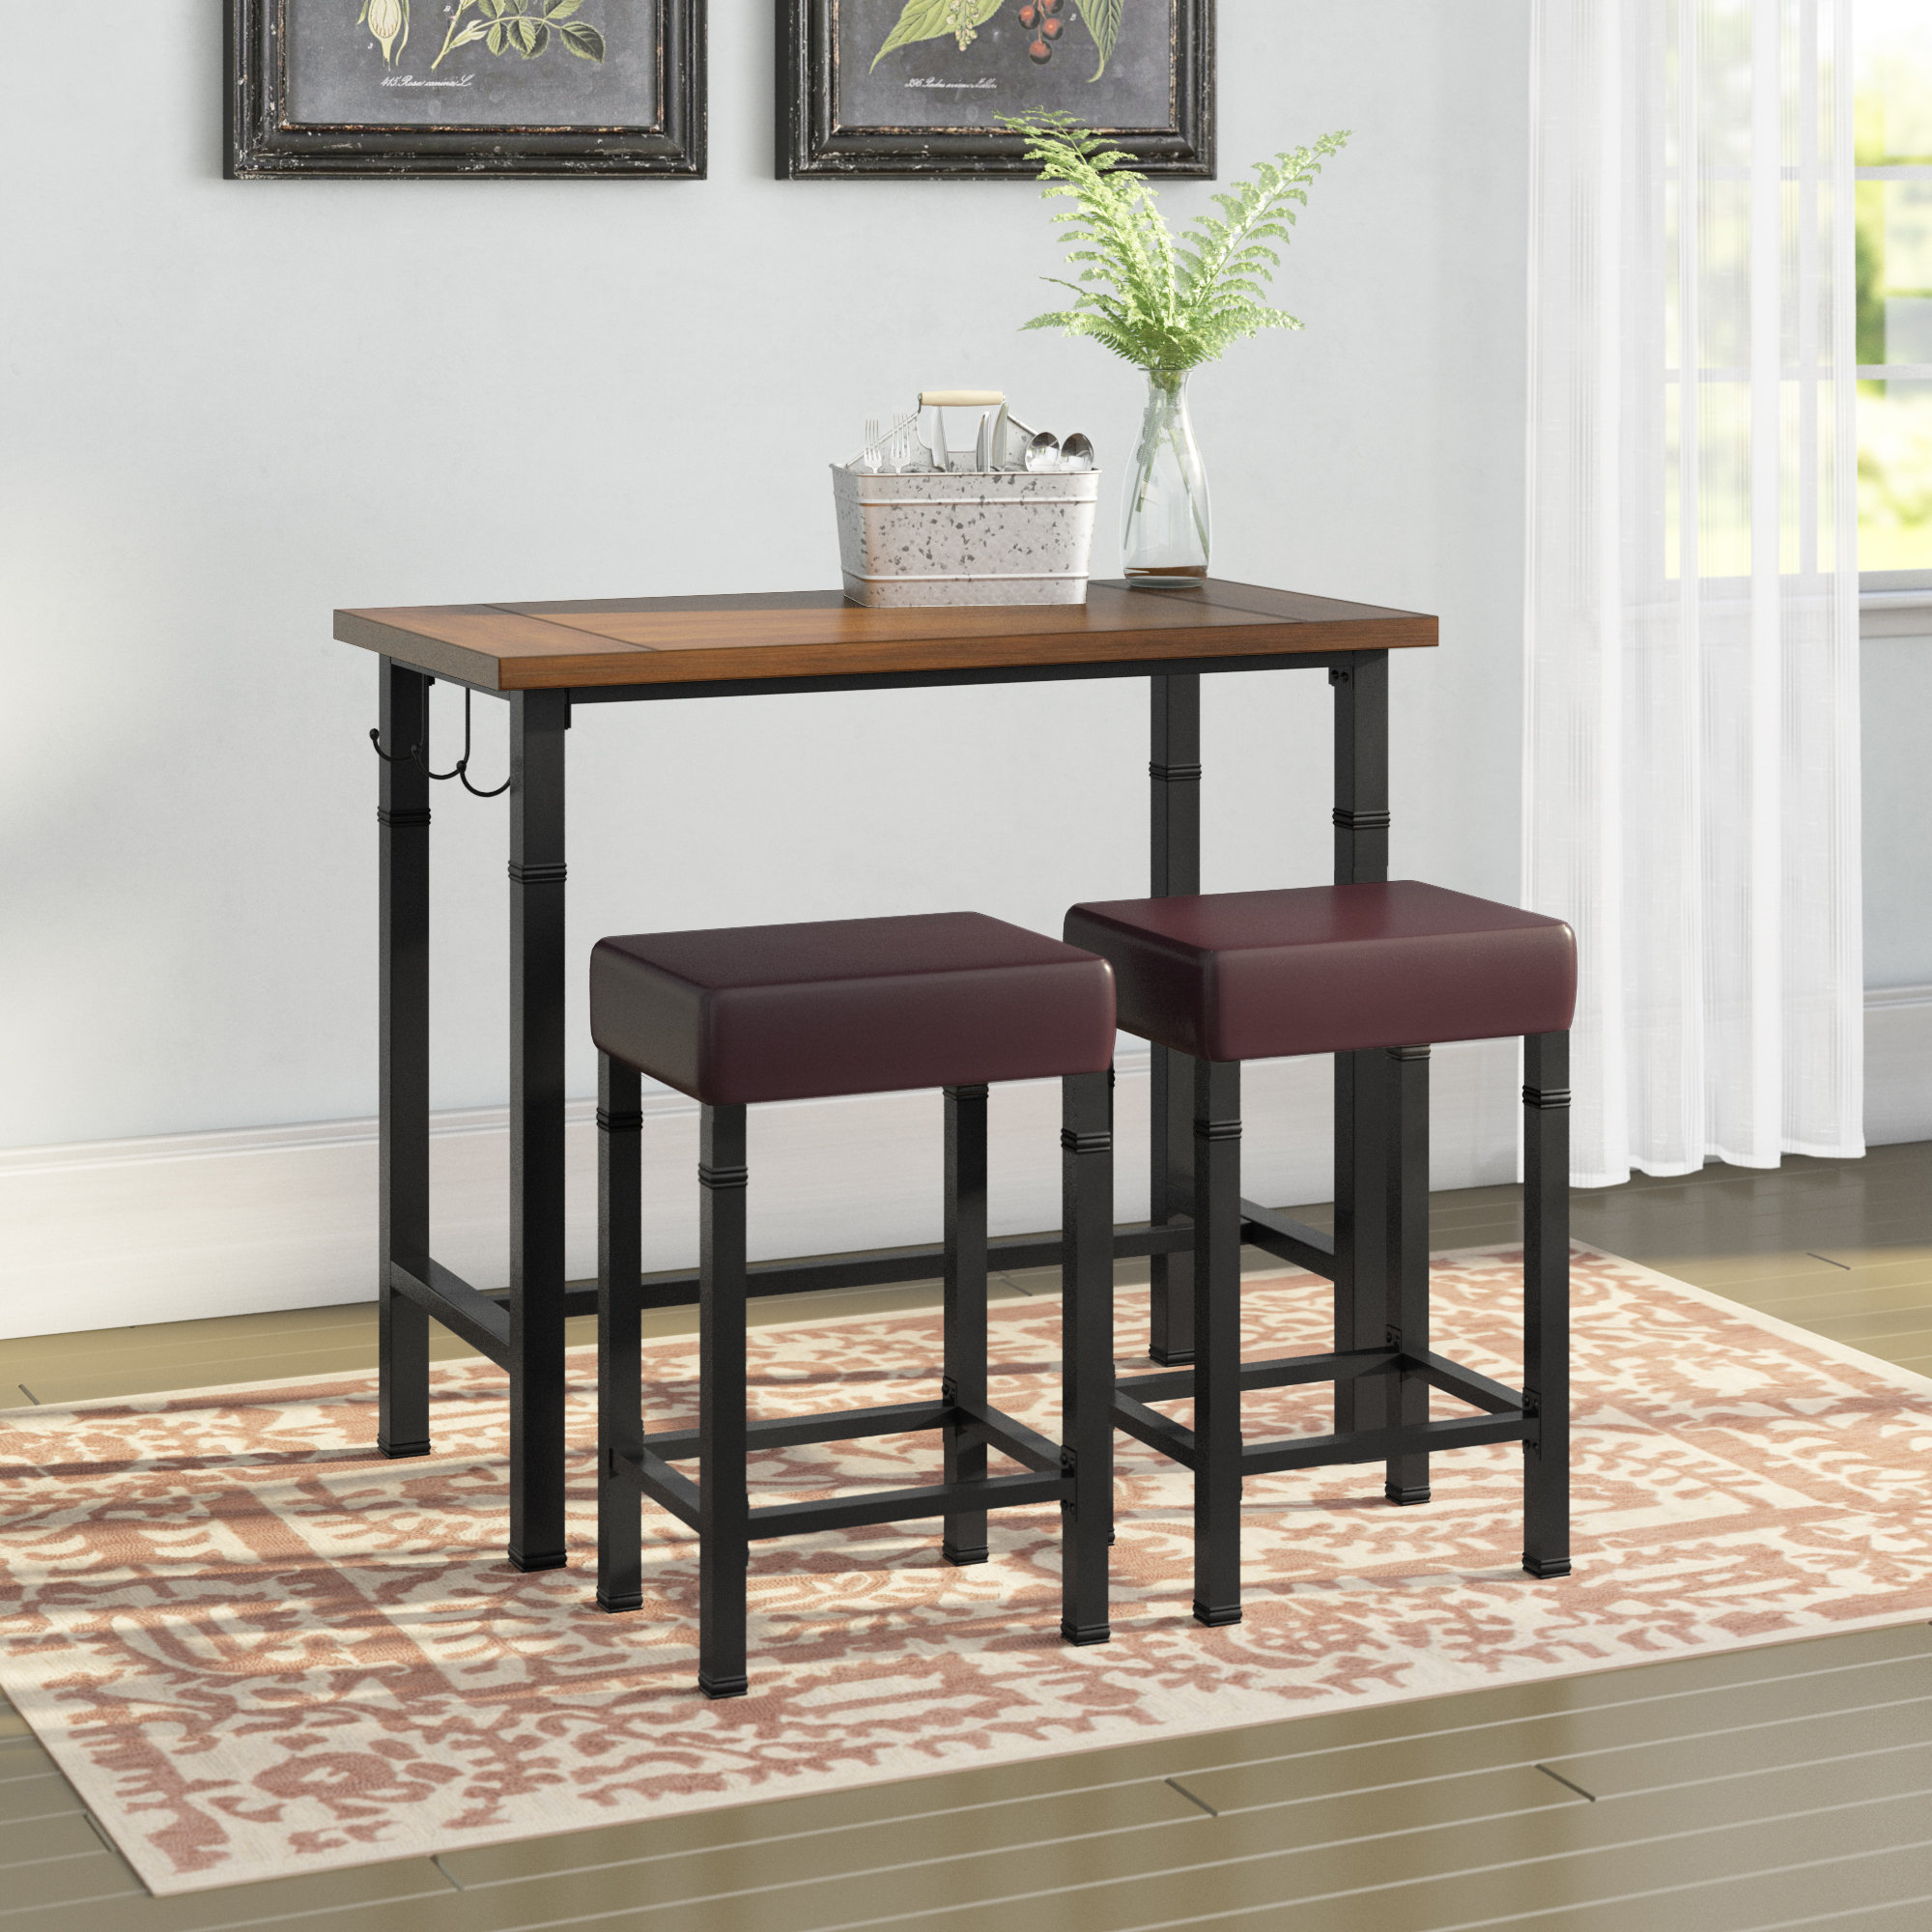 Penelope 3 Piece Counter Height Wood Dining Sets Intended For Preferred Laurel Foundry Modern Farmhouse Sevigny 3 Piece Pub Table Set (#11 of 20)